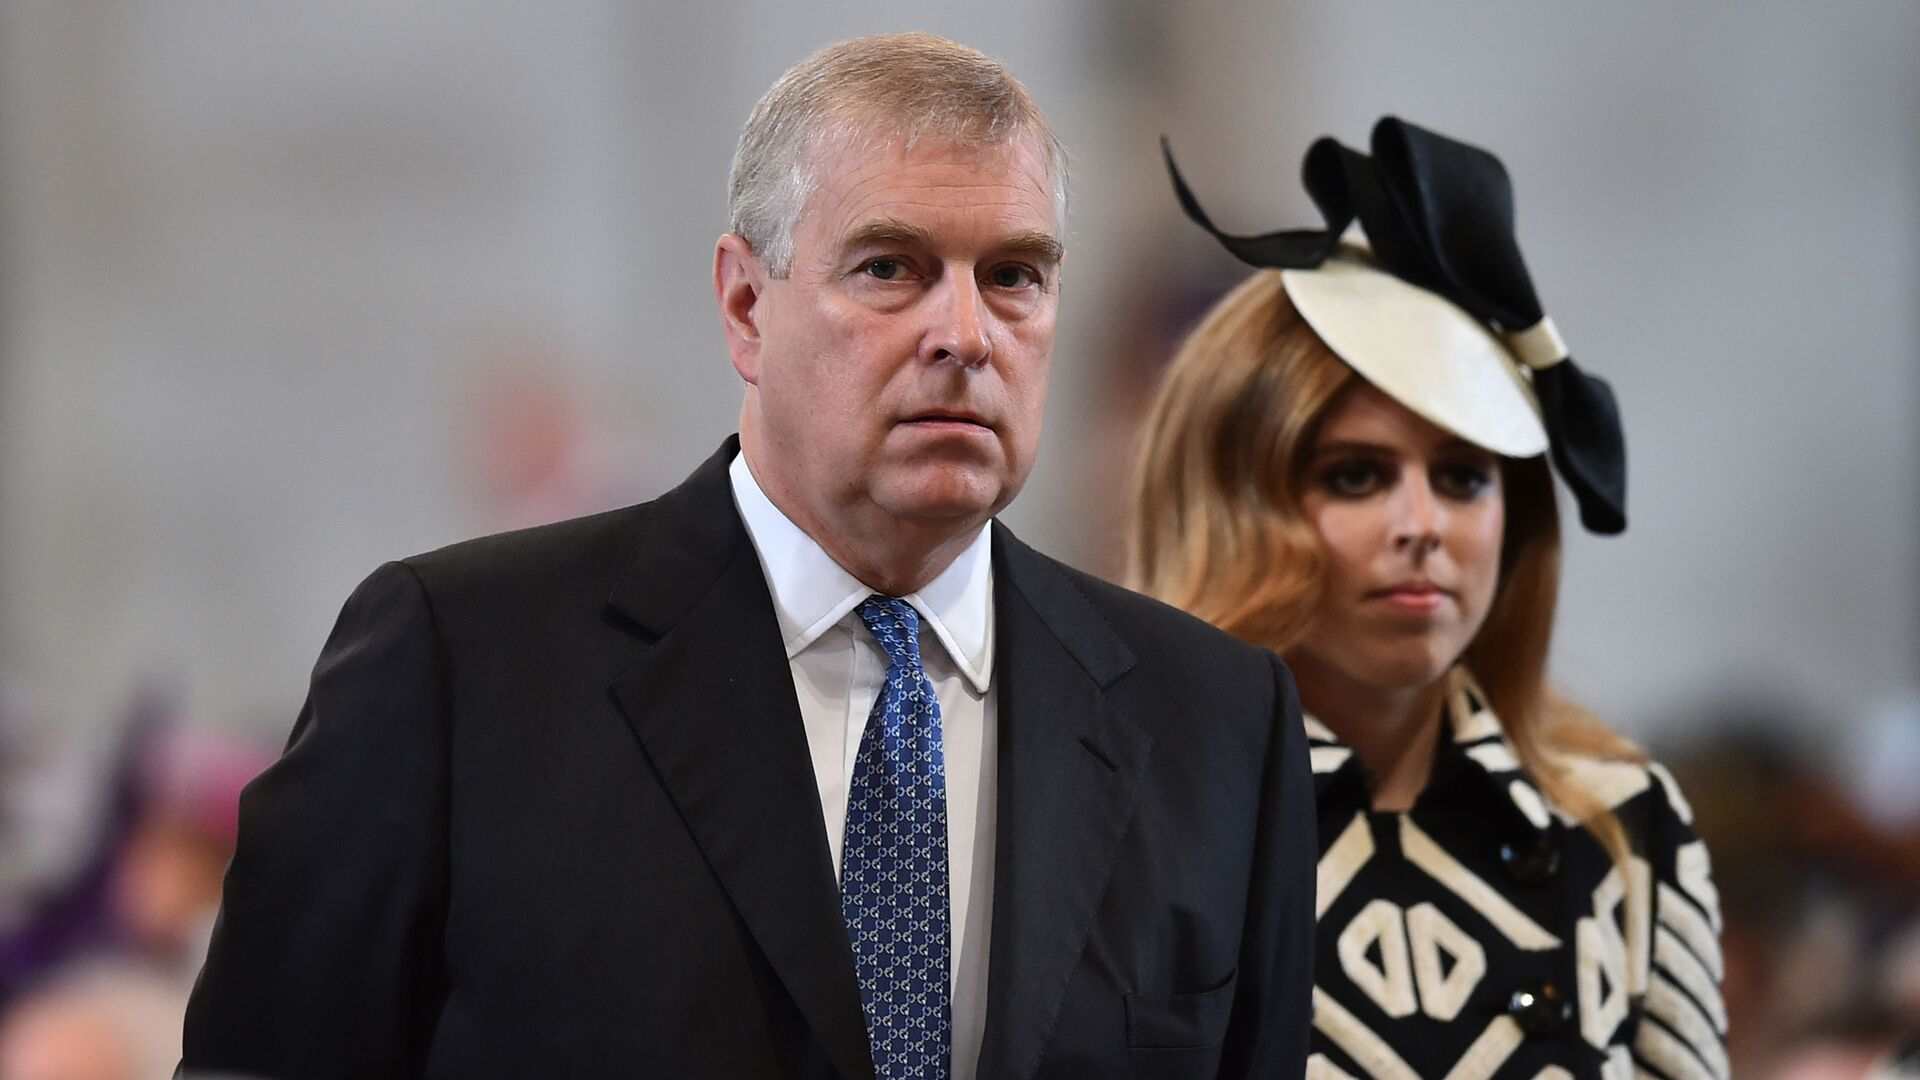 Britain's Prince Andrew and Princess Beatrice arrive for a National Service of Thanksgiving to mark the 90th birthday of Britain's Queen Elizabeth II at St Paul's Cathedral in London, Friday, June 10, 2016. - Sputnik International, 1920, 19.09.2021